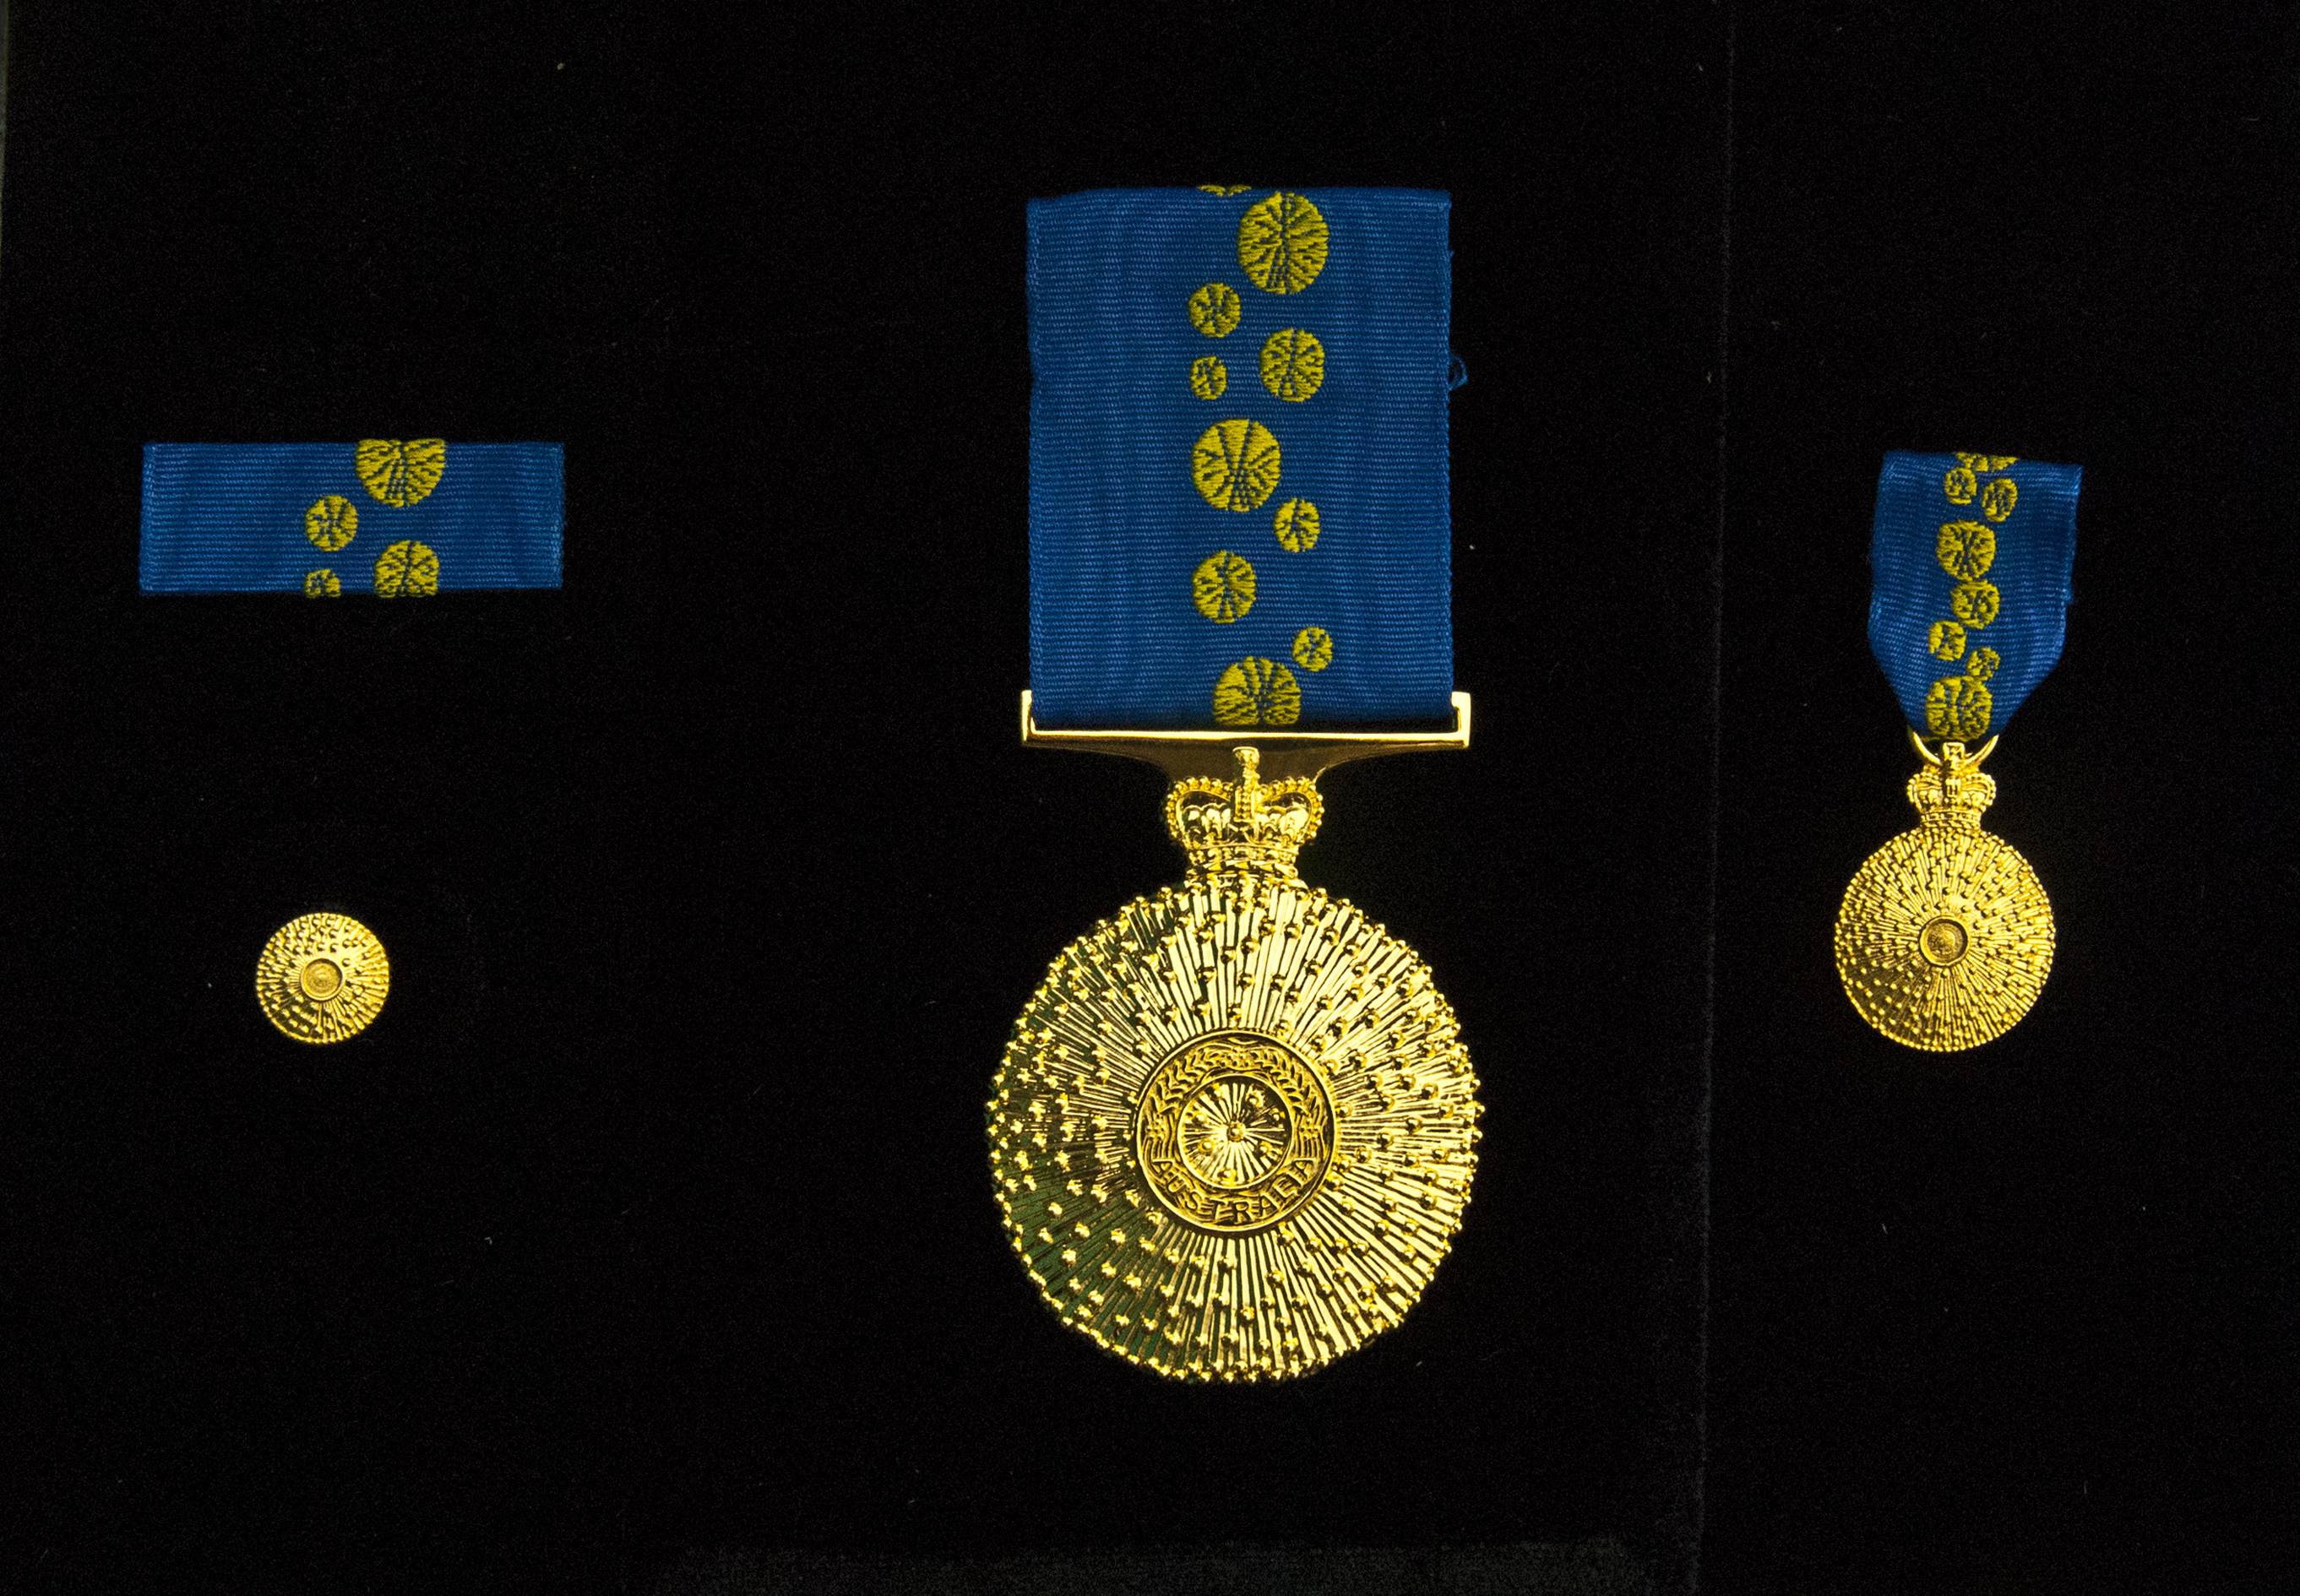 Order of Australia Medal Awarded to Dr. Rolf Peters